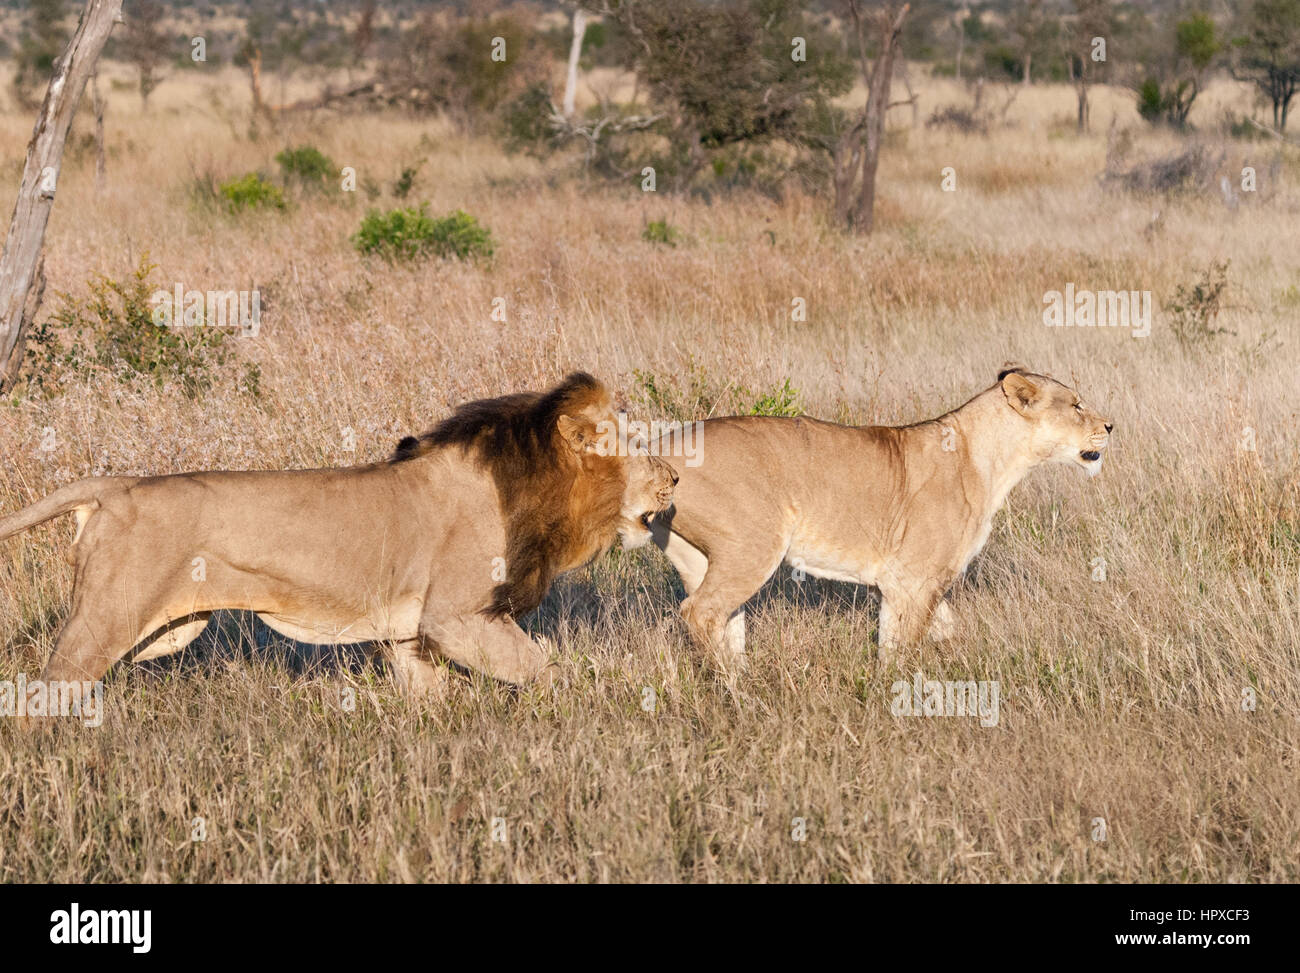 Lion and Lioness hunting at Kruger National Park, South Africa Stock Photo